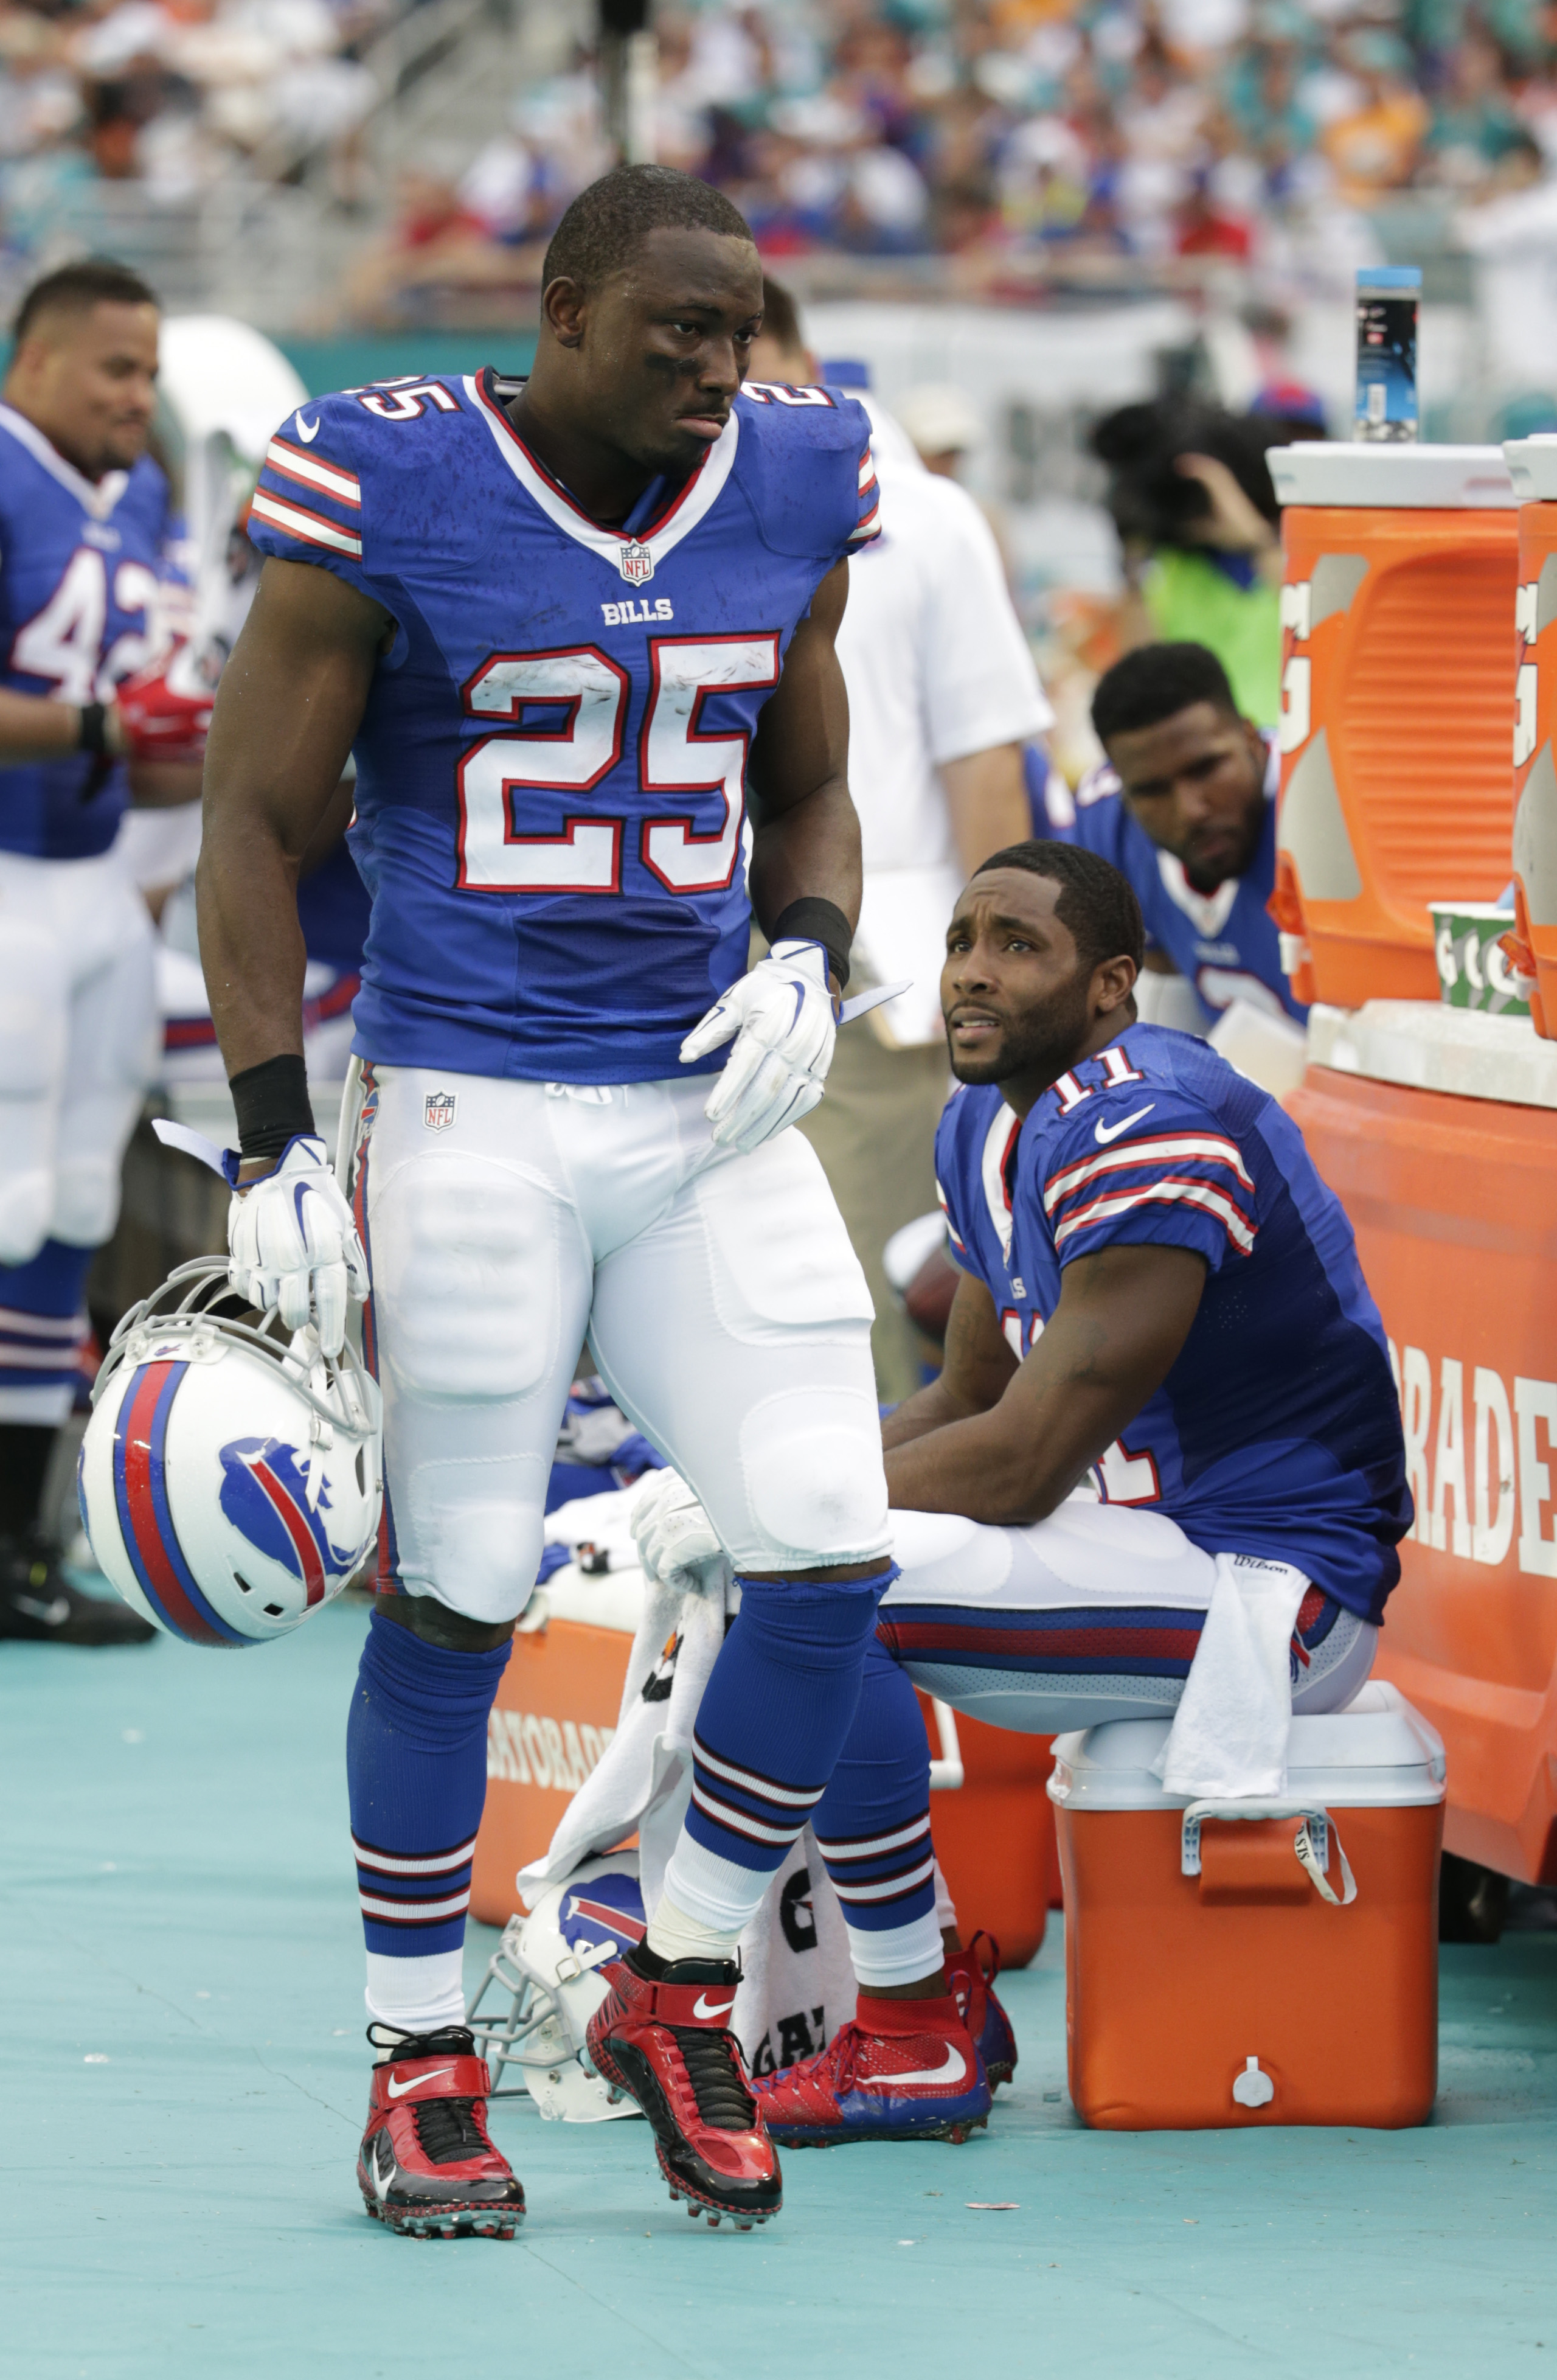 Buffalo Bills running back LeSean McCoy (25) walks the sidelines during the first half of an NFL football game against the Miami Dolphins, Sunday, Sept. 27, 2015 in Miami Gardens, Fla. (AP Photo/Lynne Sladky)